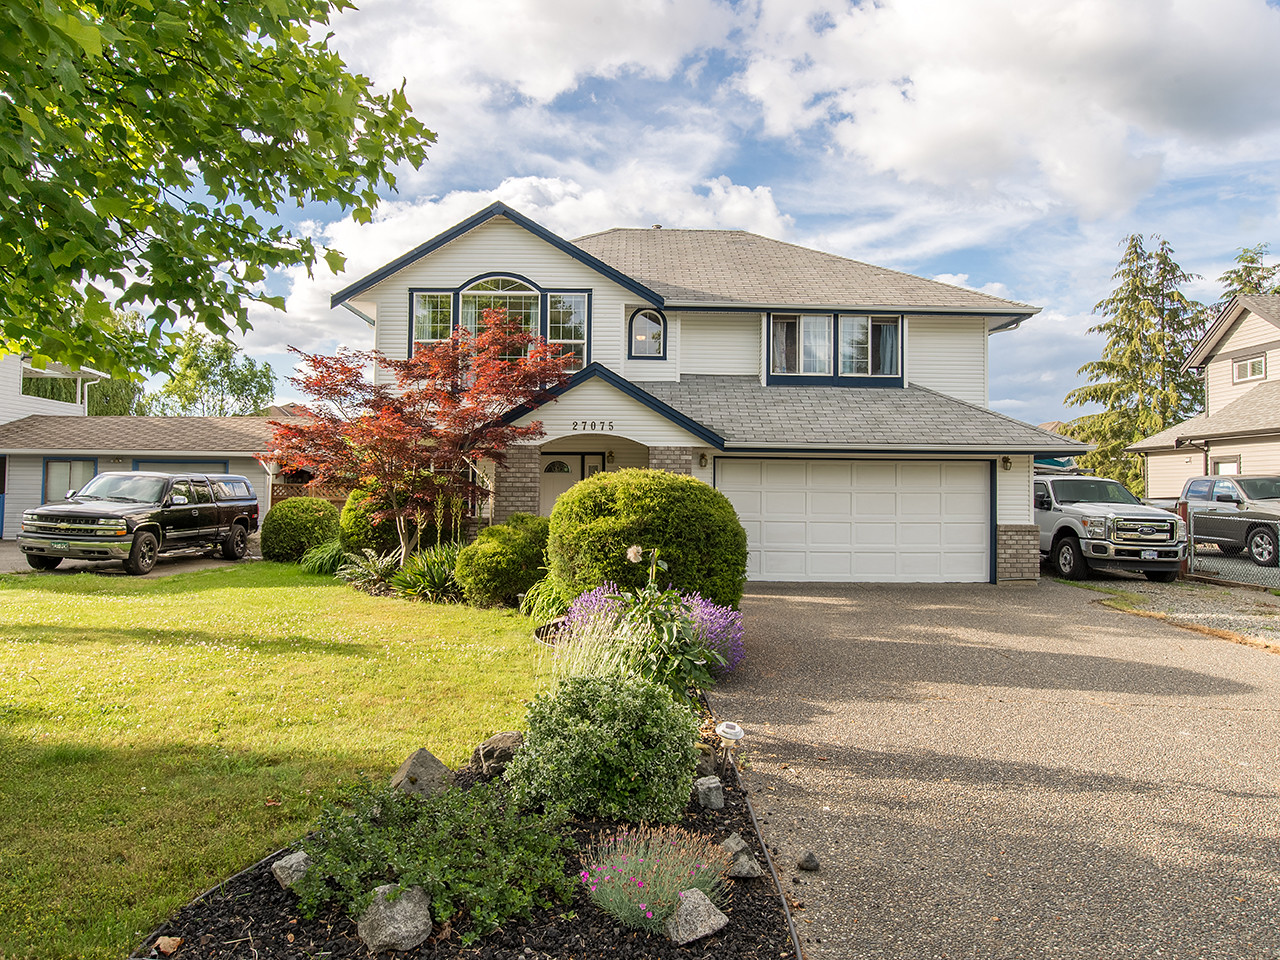 27075 26 Ave for MLS